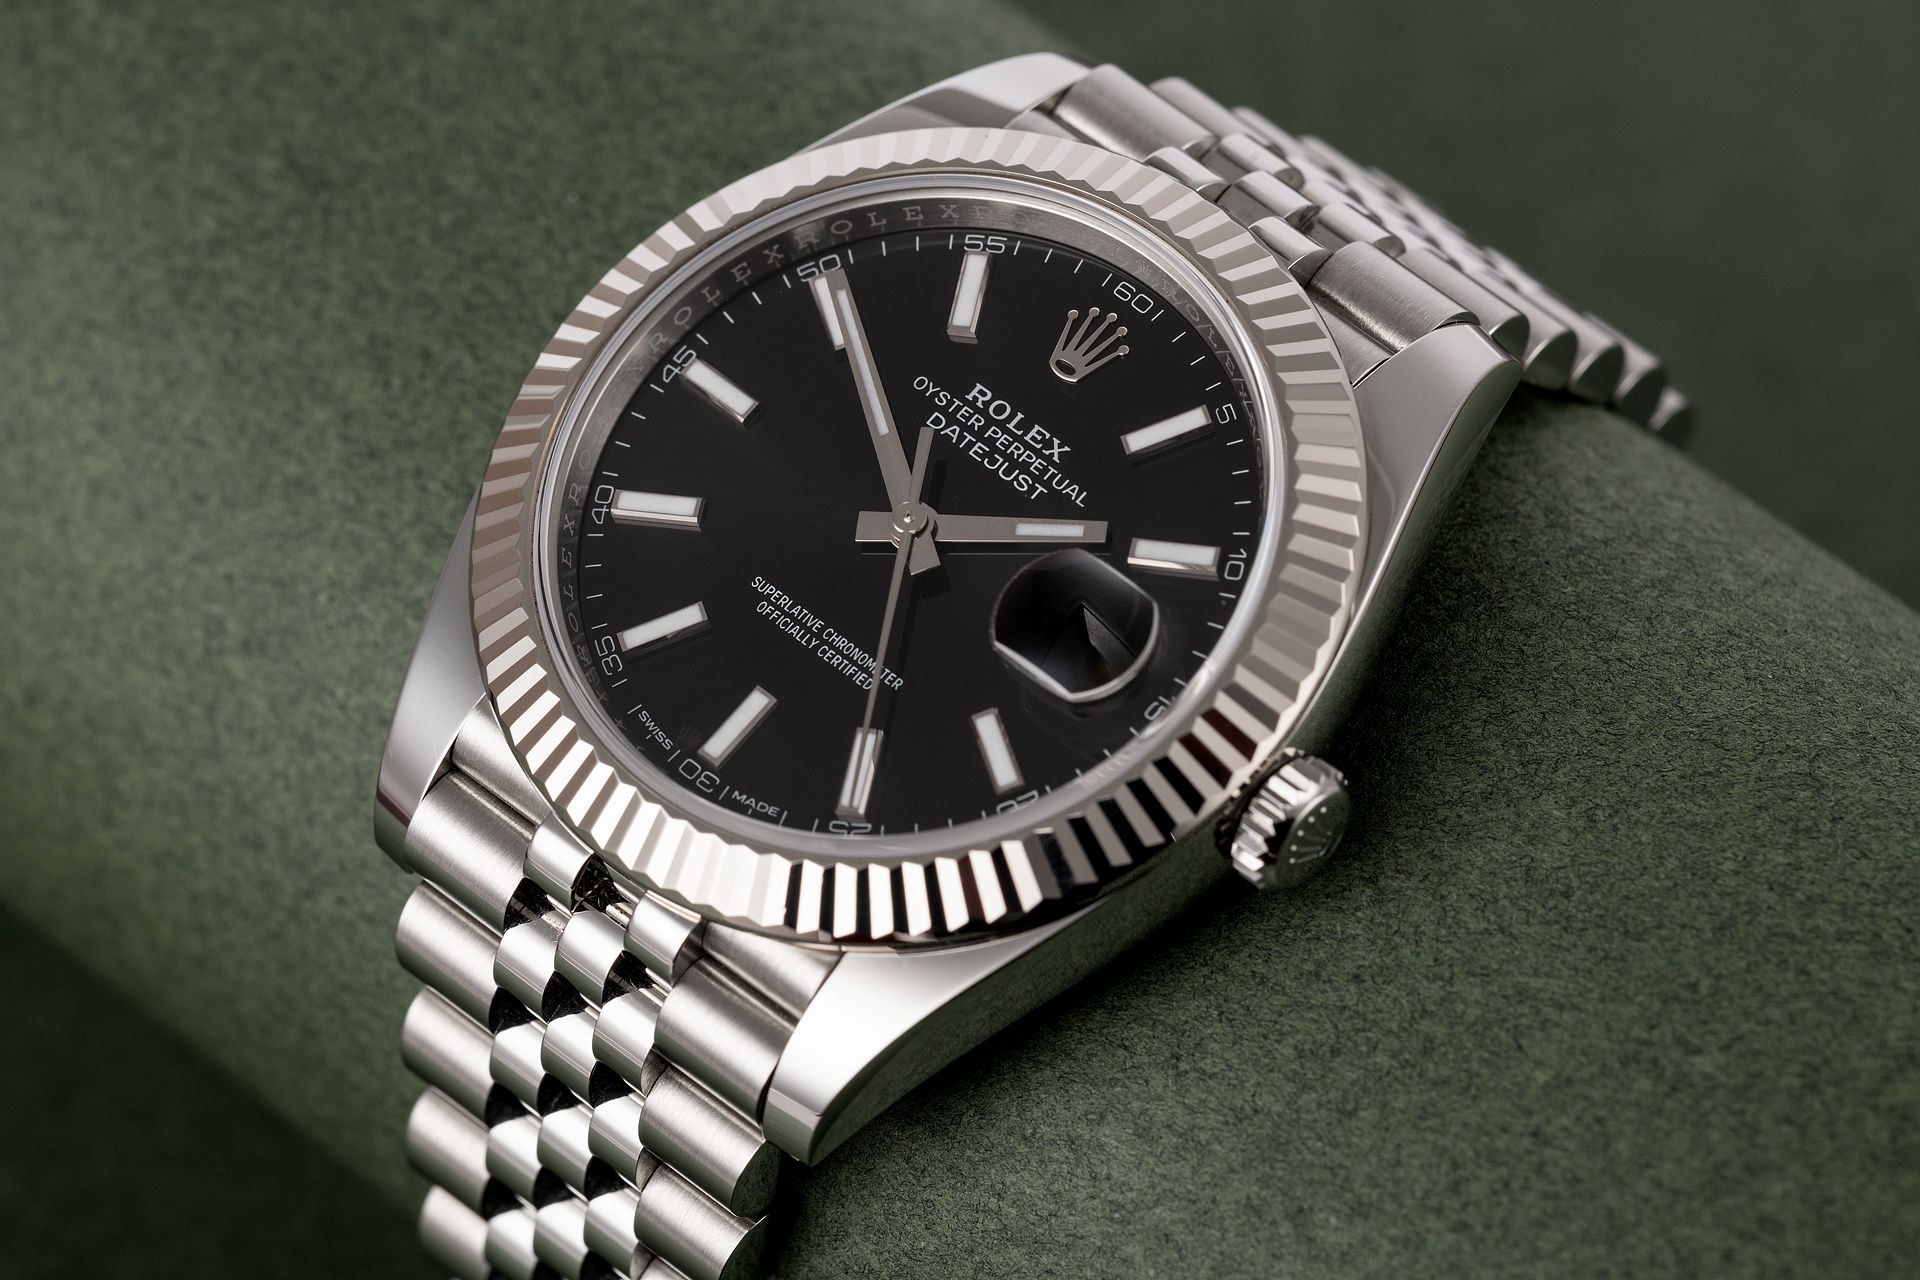 ref 126334 | 5 Year Rolex Warranty | Rolex Datejust 41